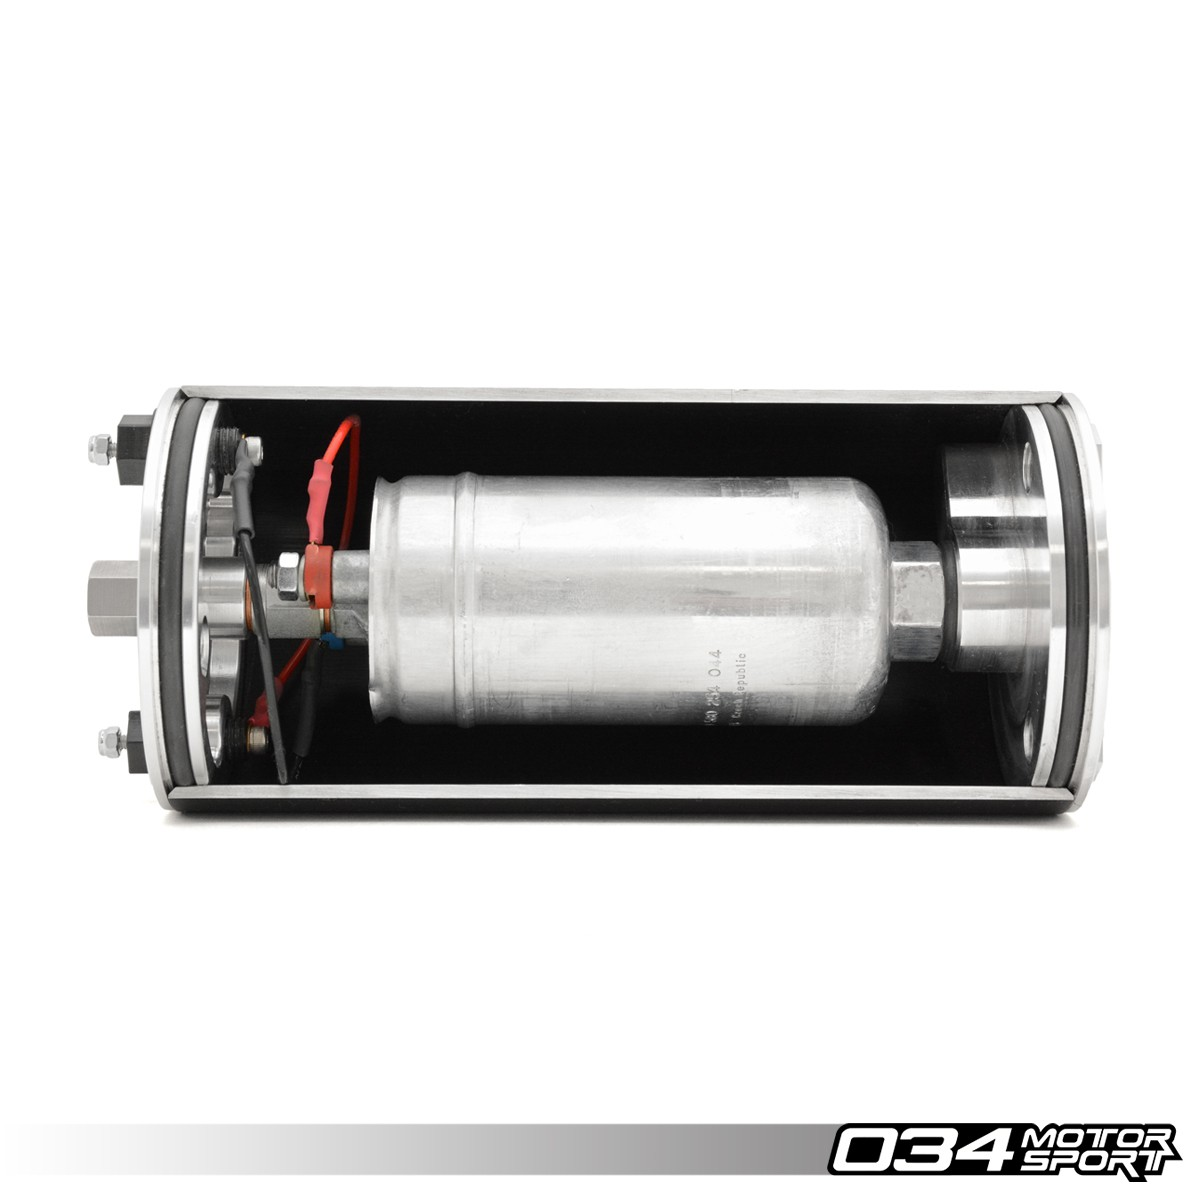 Fully Enclosed Fp34 Fuel Pump Surge Tank For Bosch 044 Motorsport Fuel Pump on fuel pump replacement